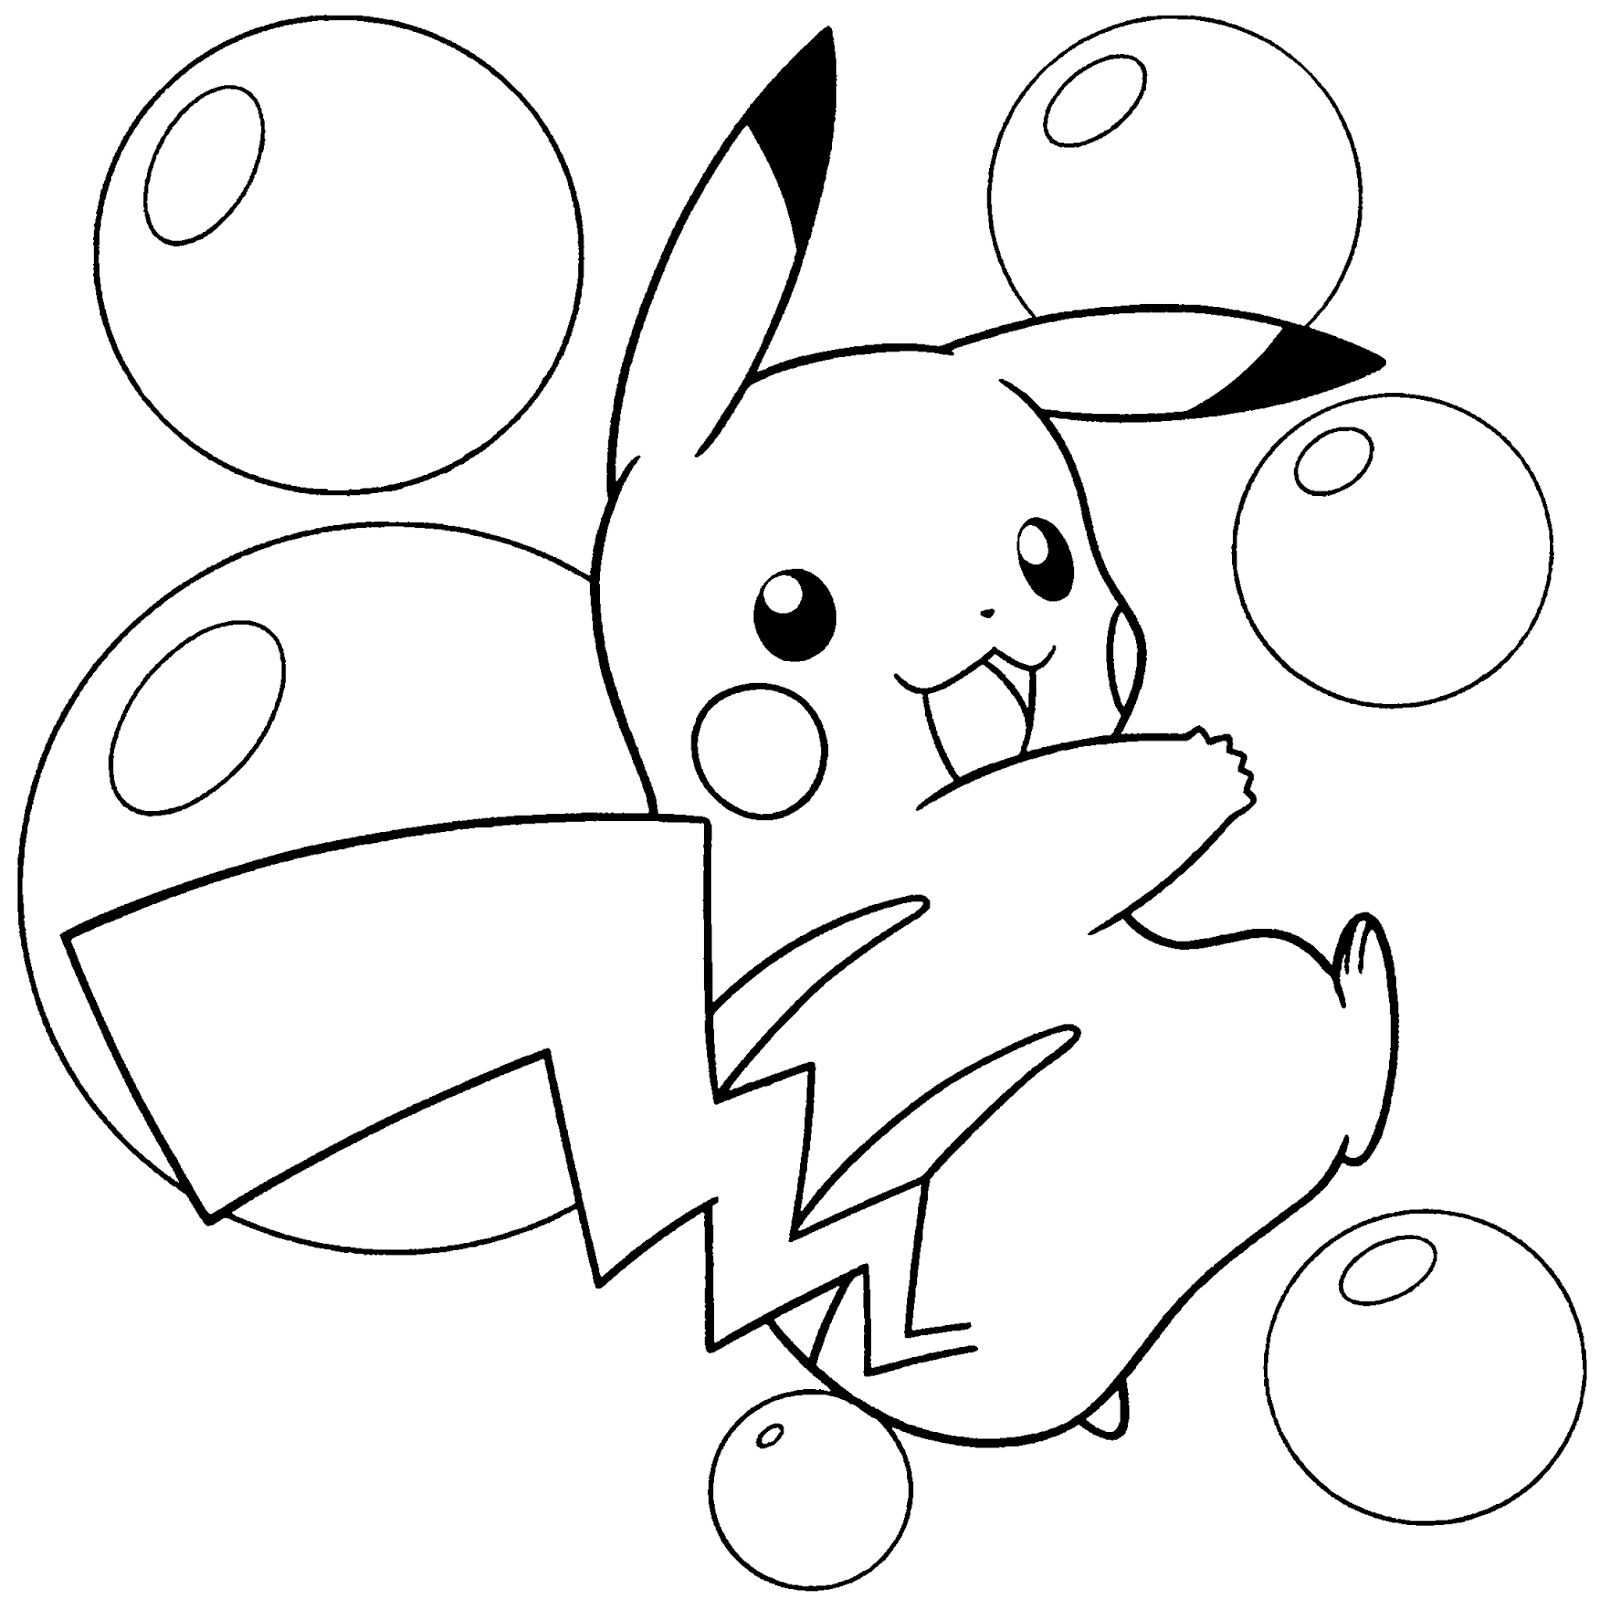 pokemon coloring sheets printable pokemon coloring pages for kids printable coloring sheets pokemon